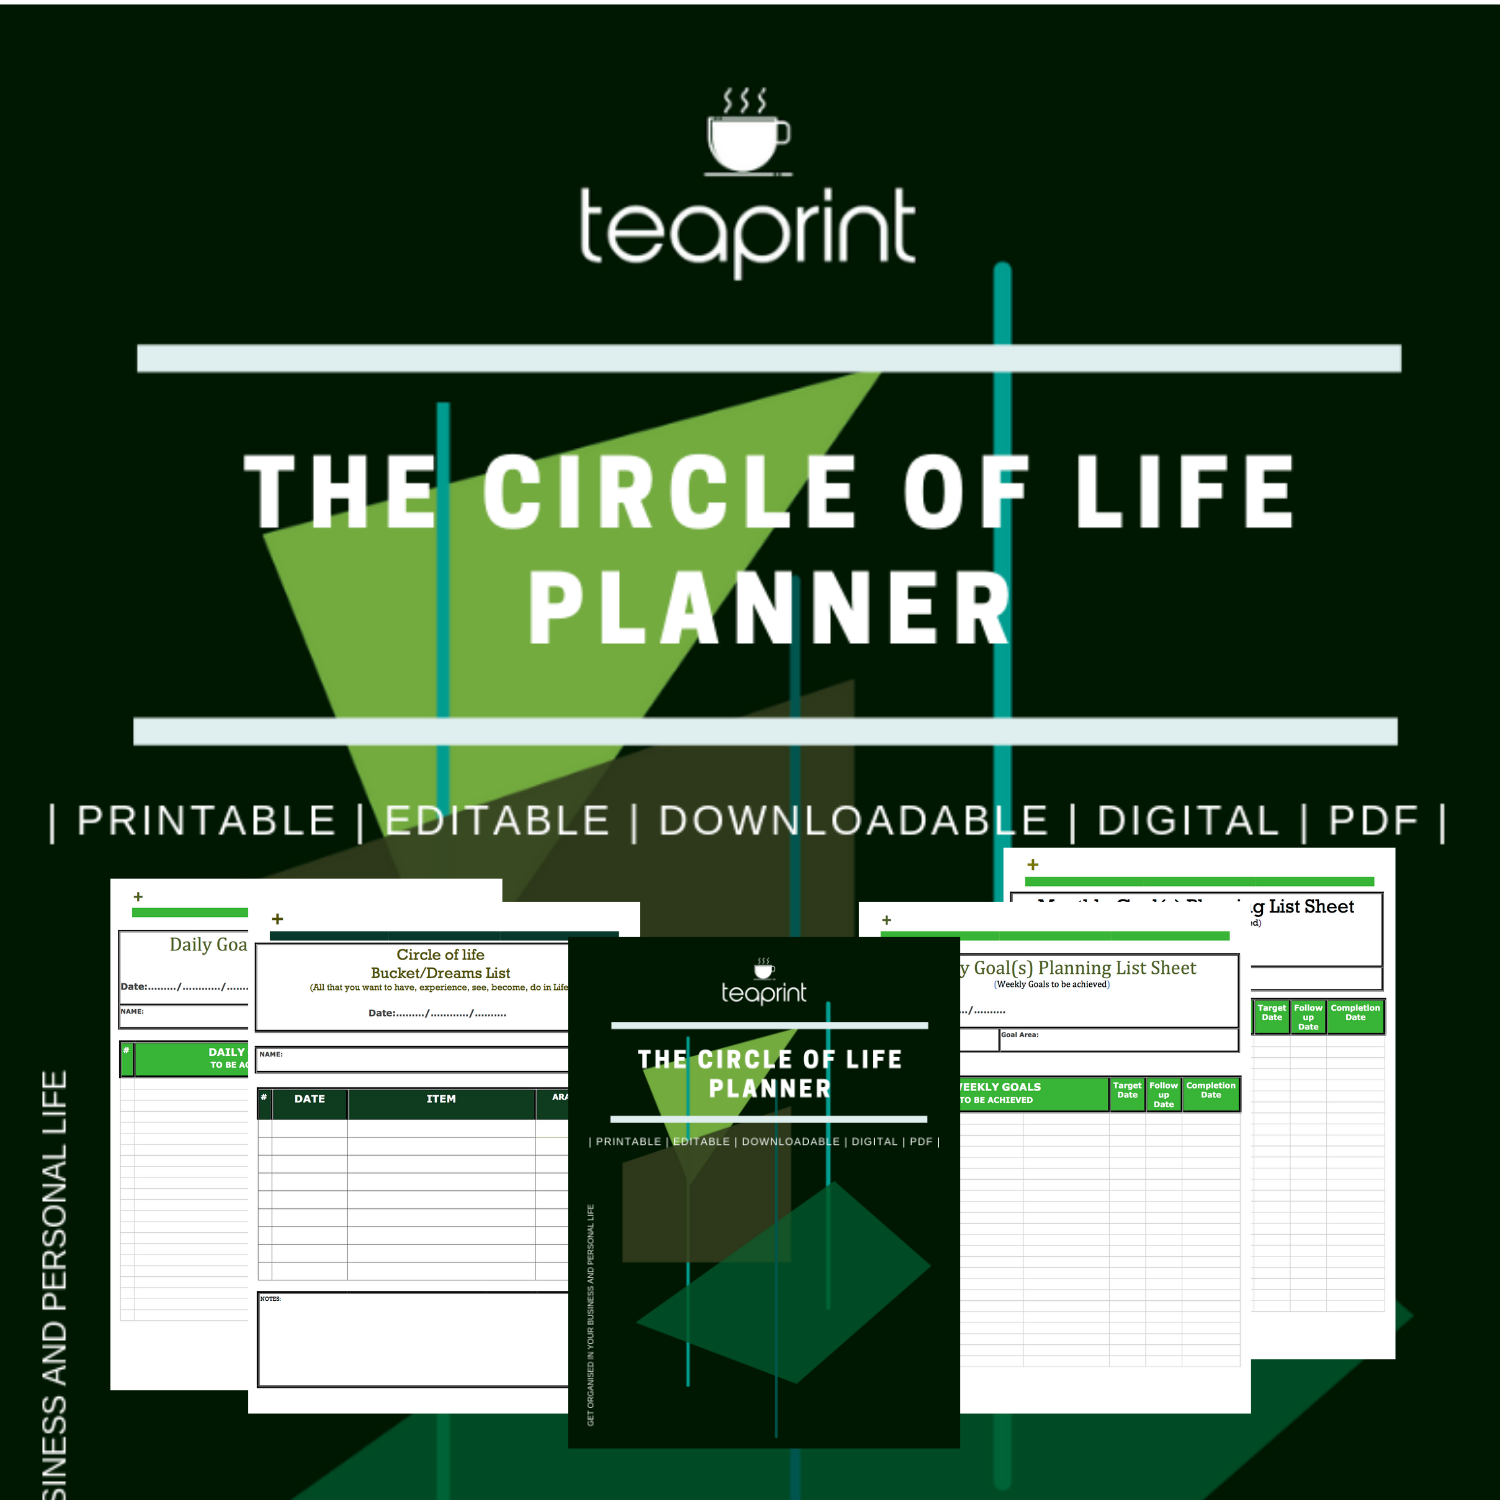 GET YOUR CIRCLE OF LIFE PLANNER